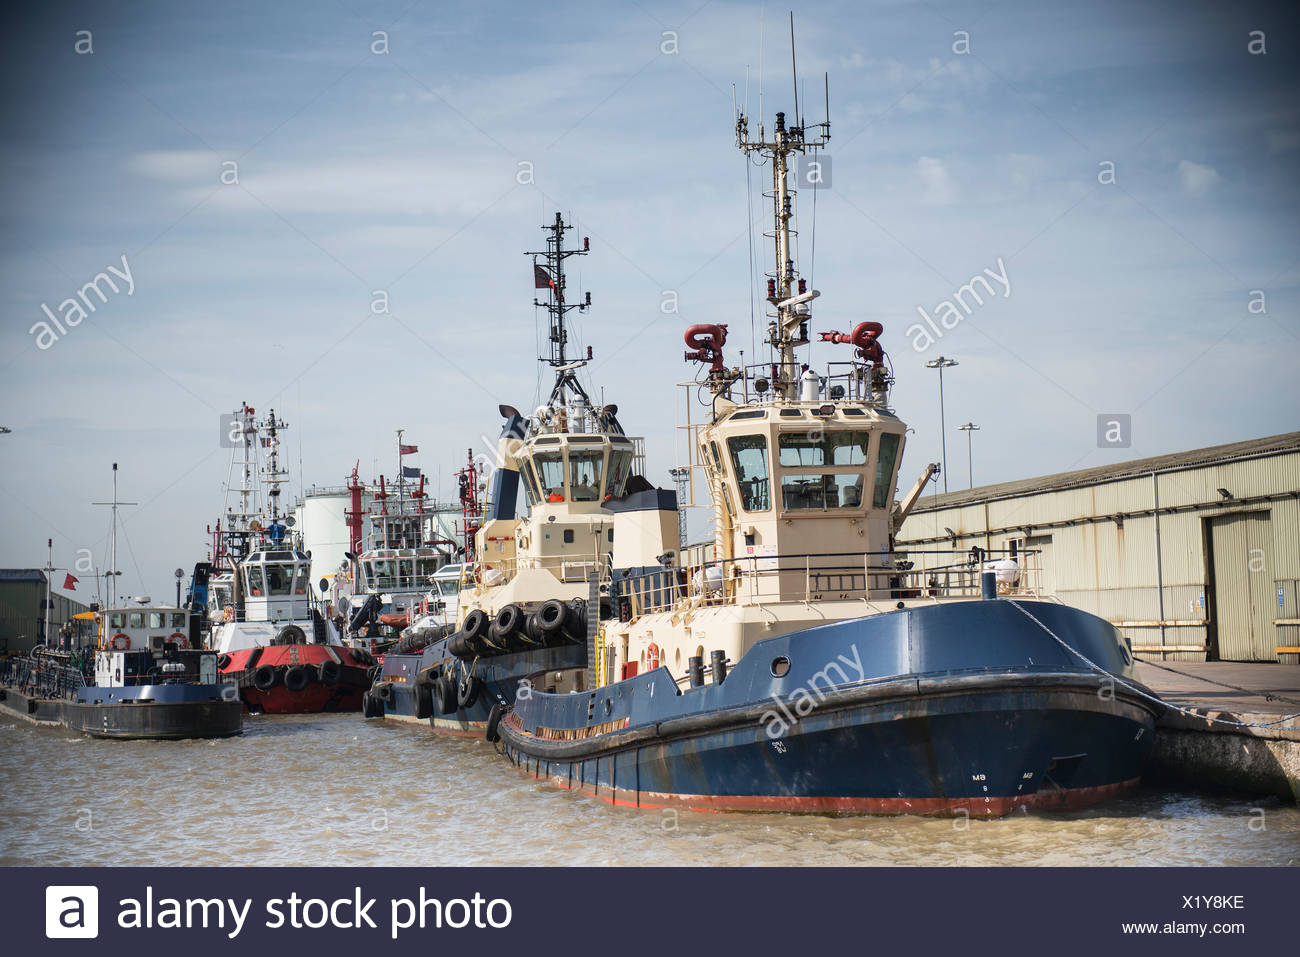 Tug boats docked in urban harbor - Stock Image